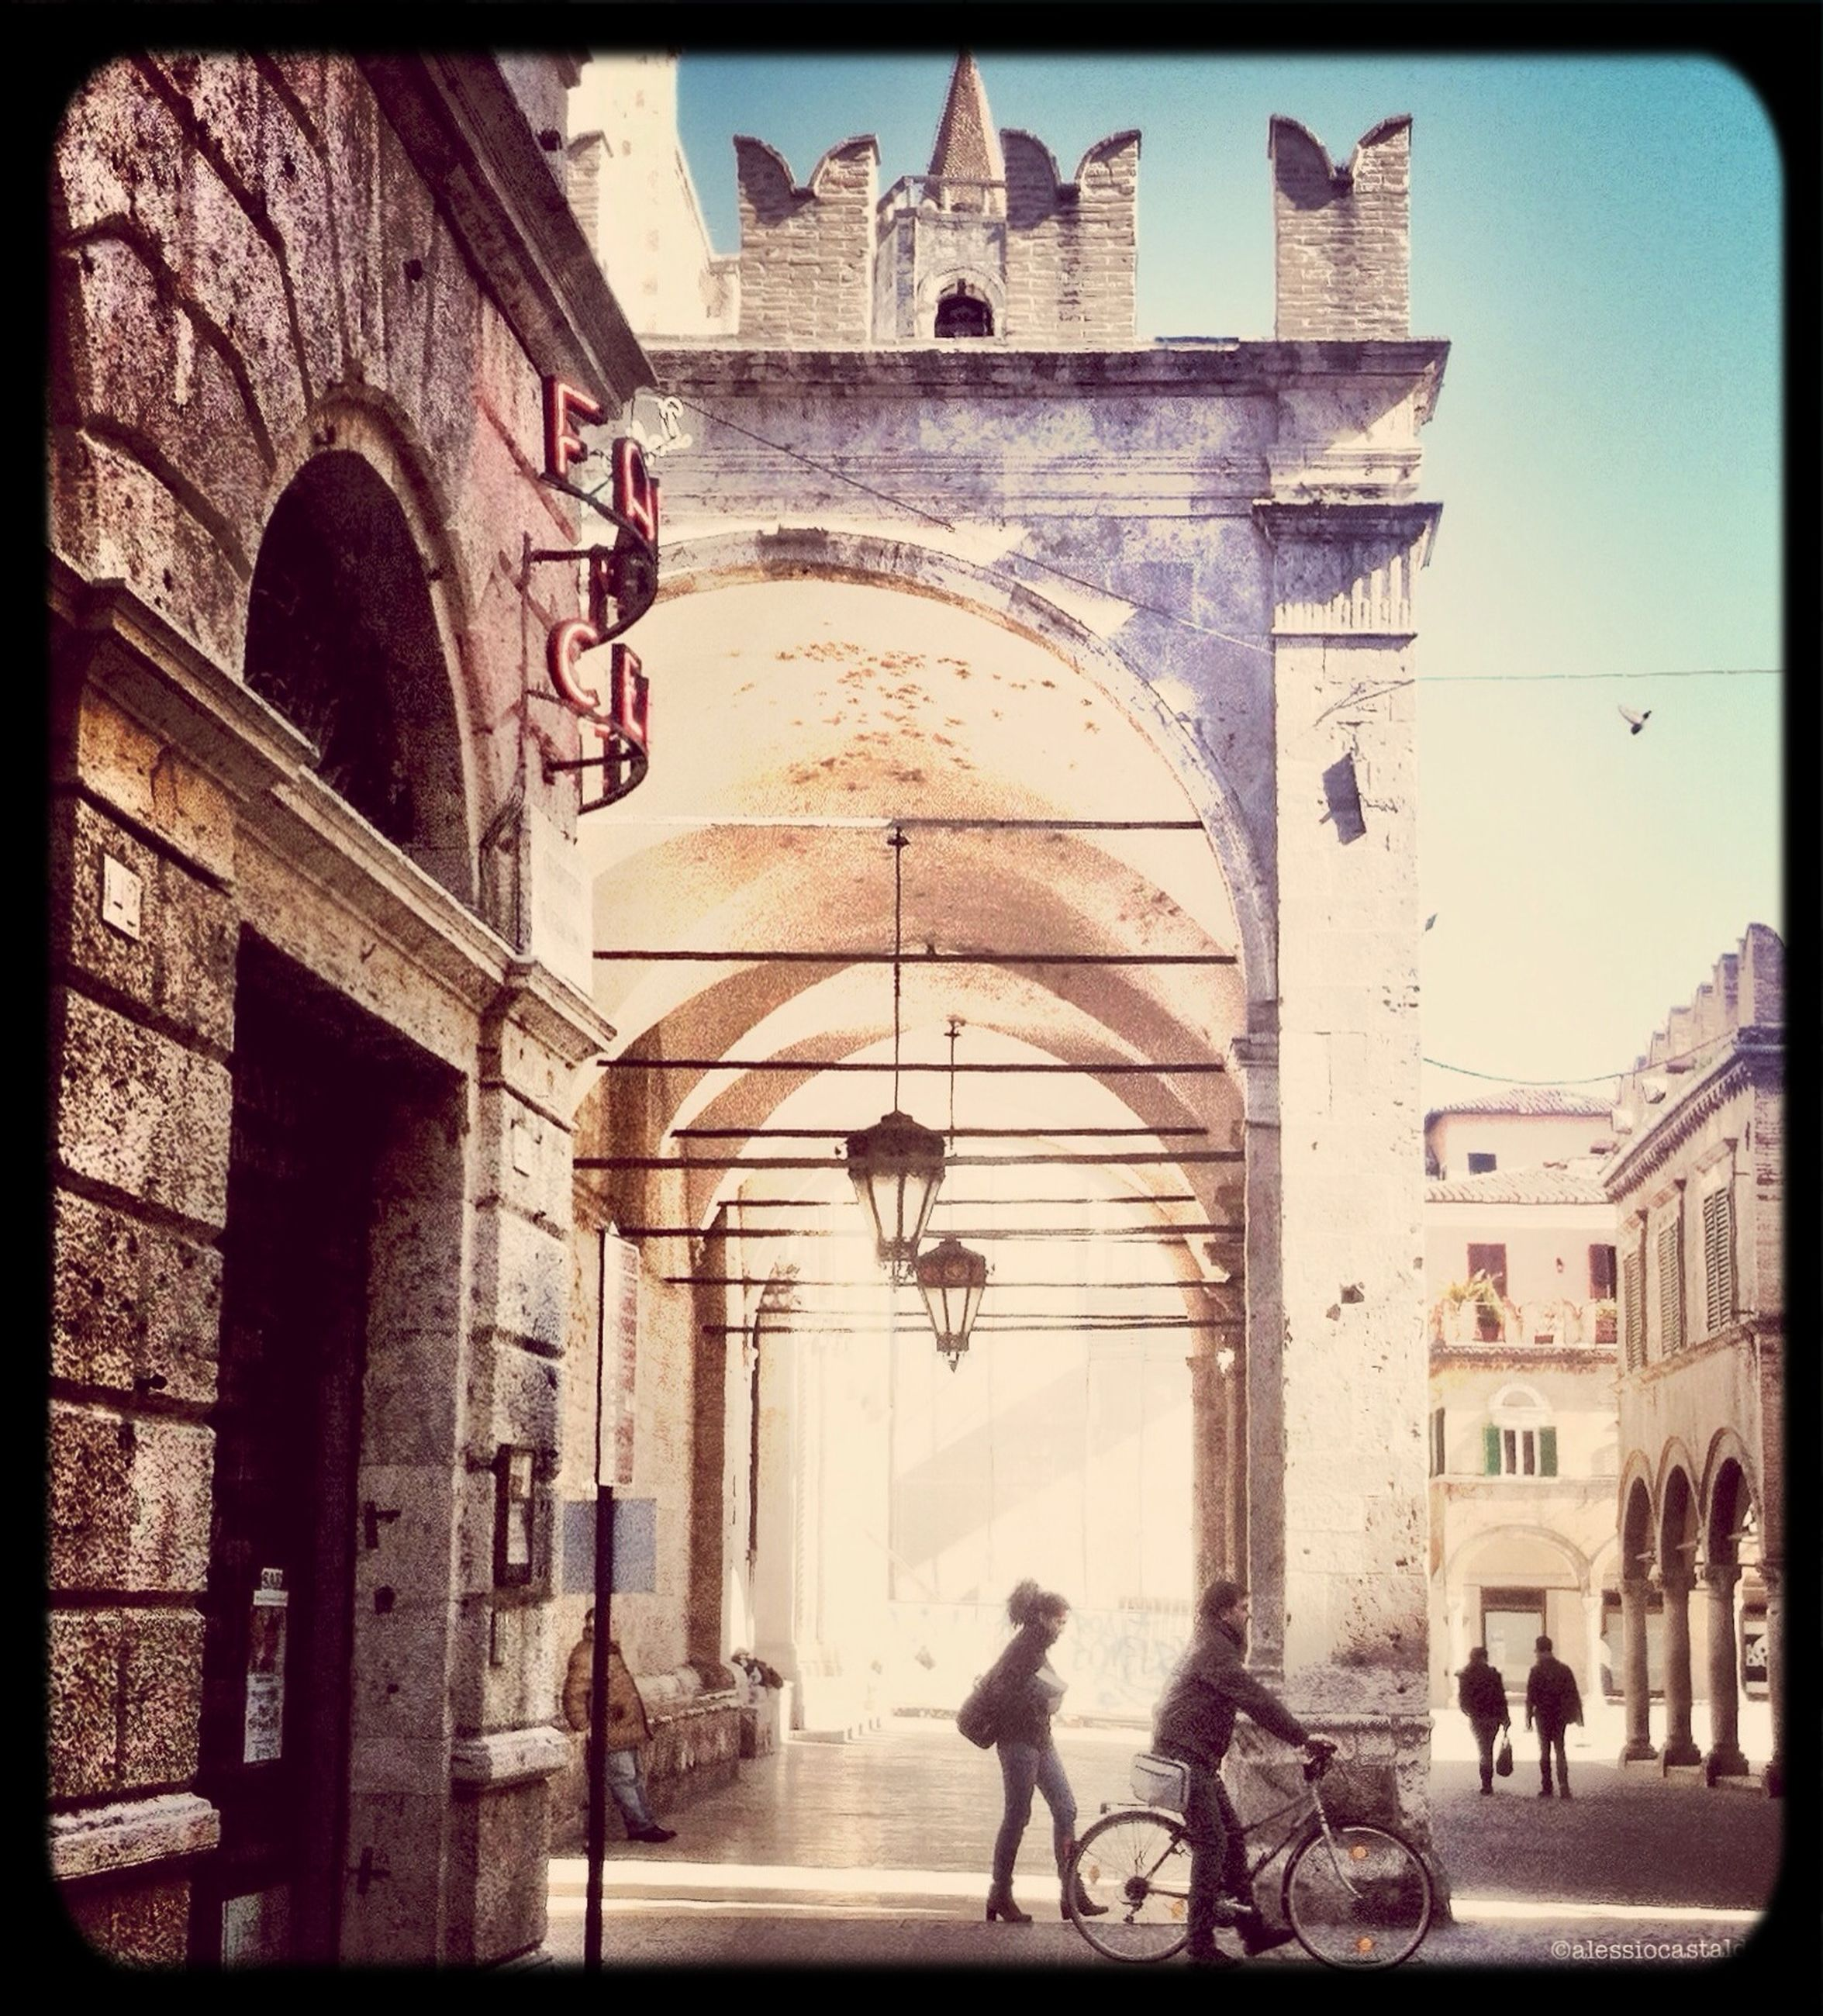 architecture, built structure, transfer print, building exterior, arch, men, auto post production filter, walking, person, lifestyles, leisure activity, large group of people, history, building, tourist, full length, city, old, old town